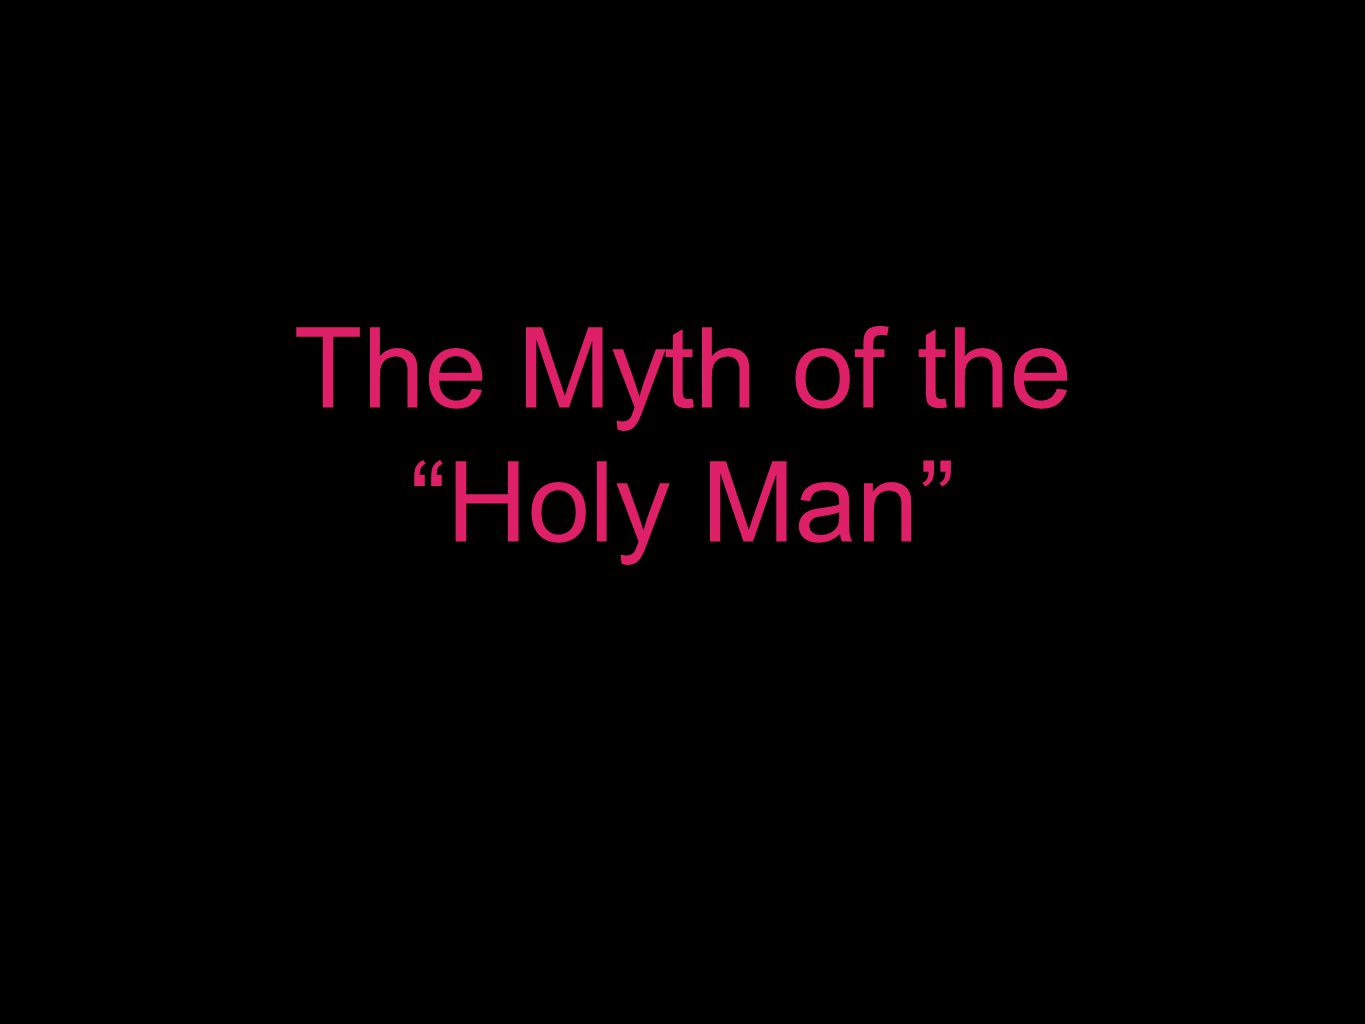 The Myth of the Holy Man